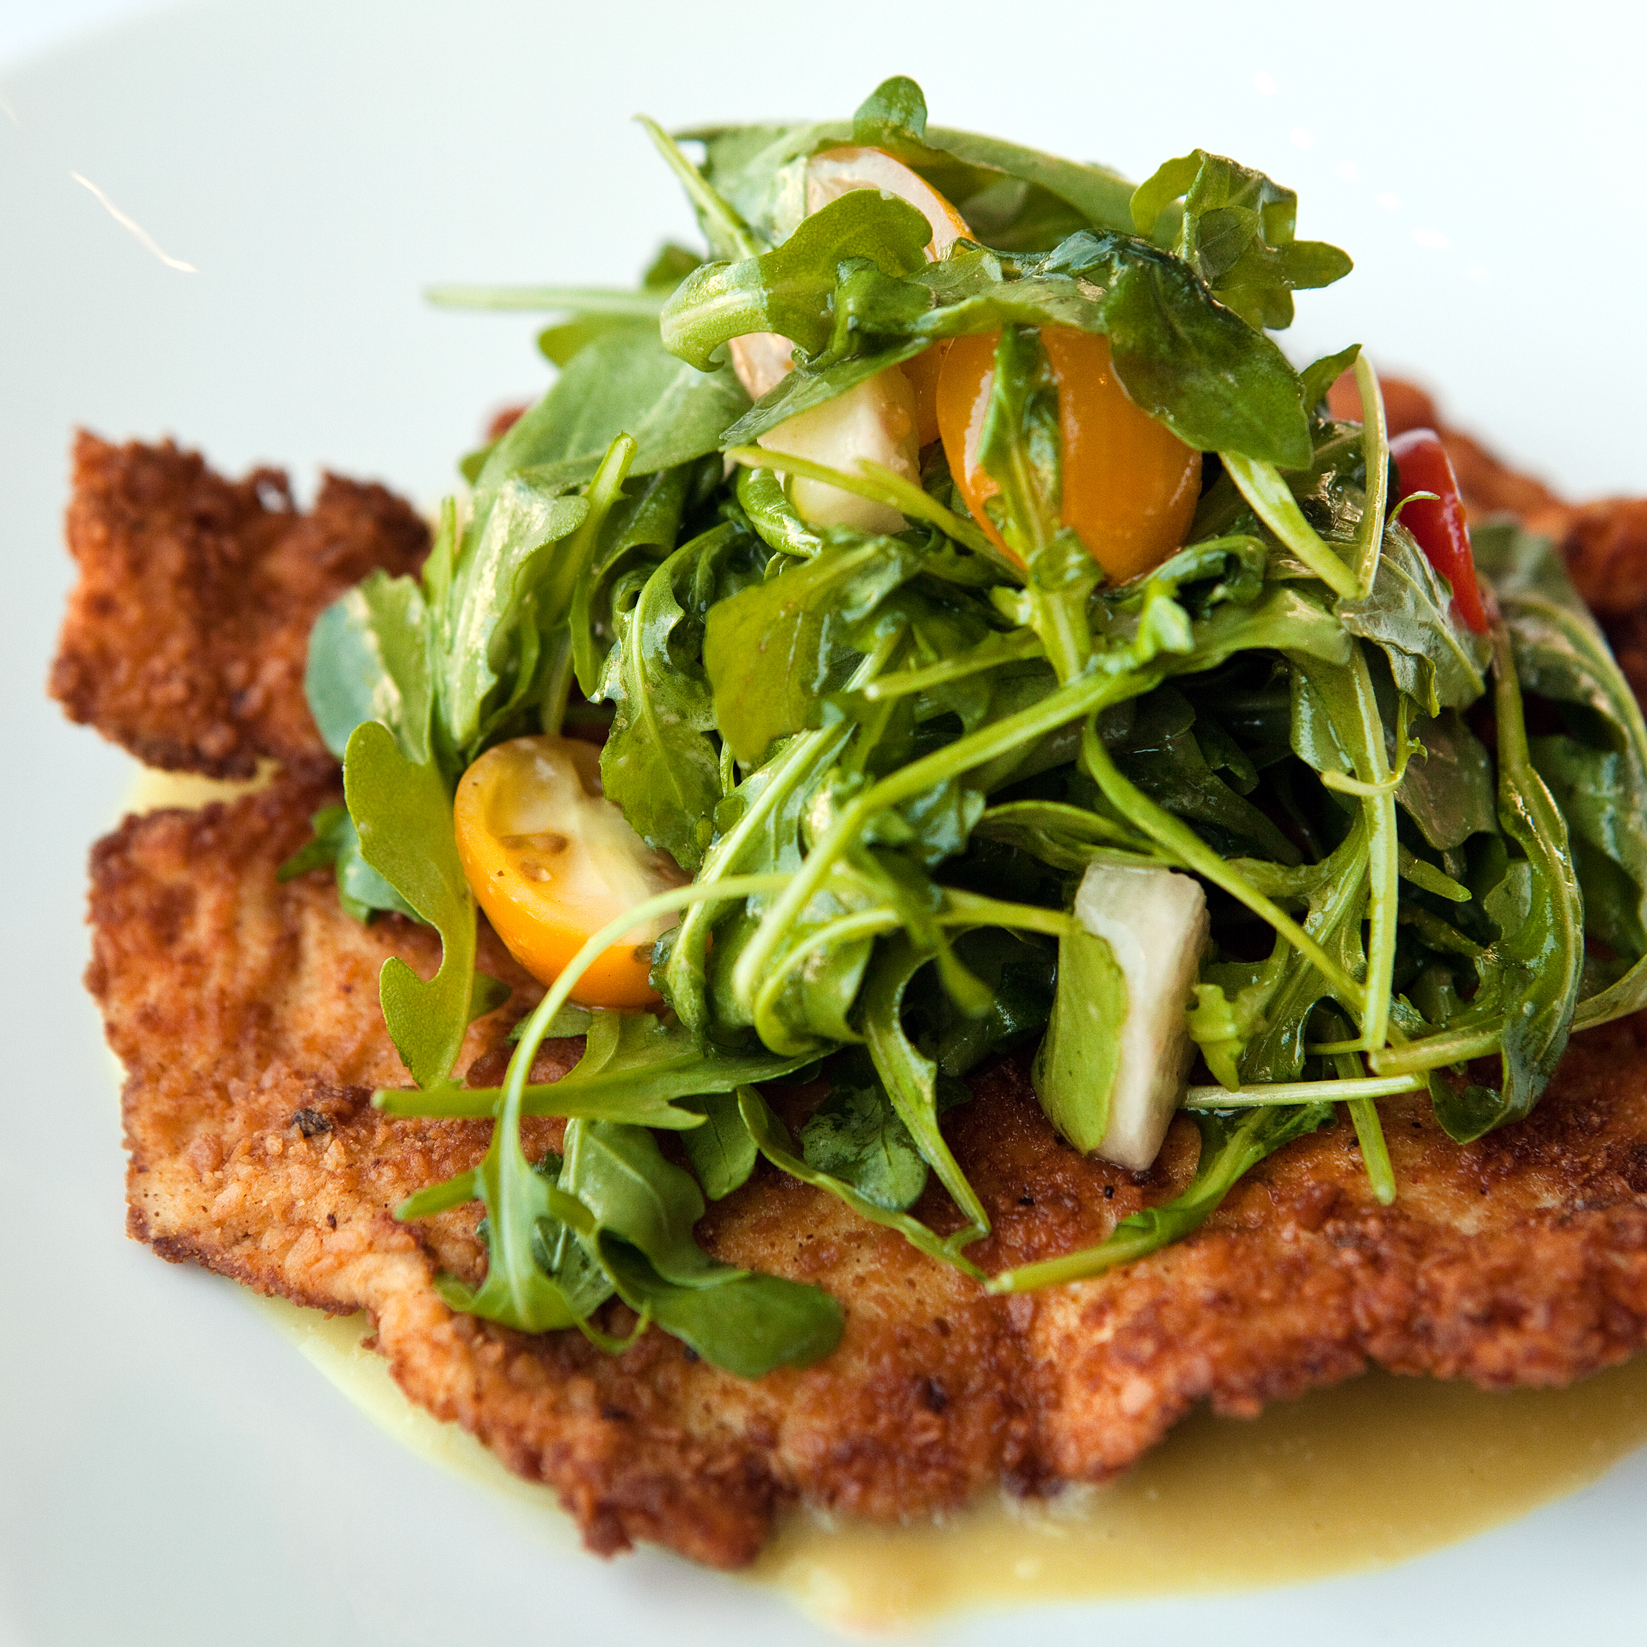 Crispy matzo-breaded chicken breast with a salad of arugula, tomatoes and jícama with tamarind vinaigrette and salsa verde.